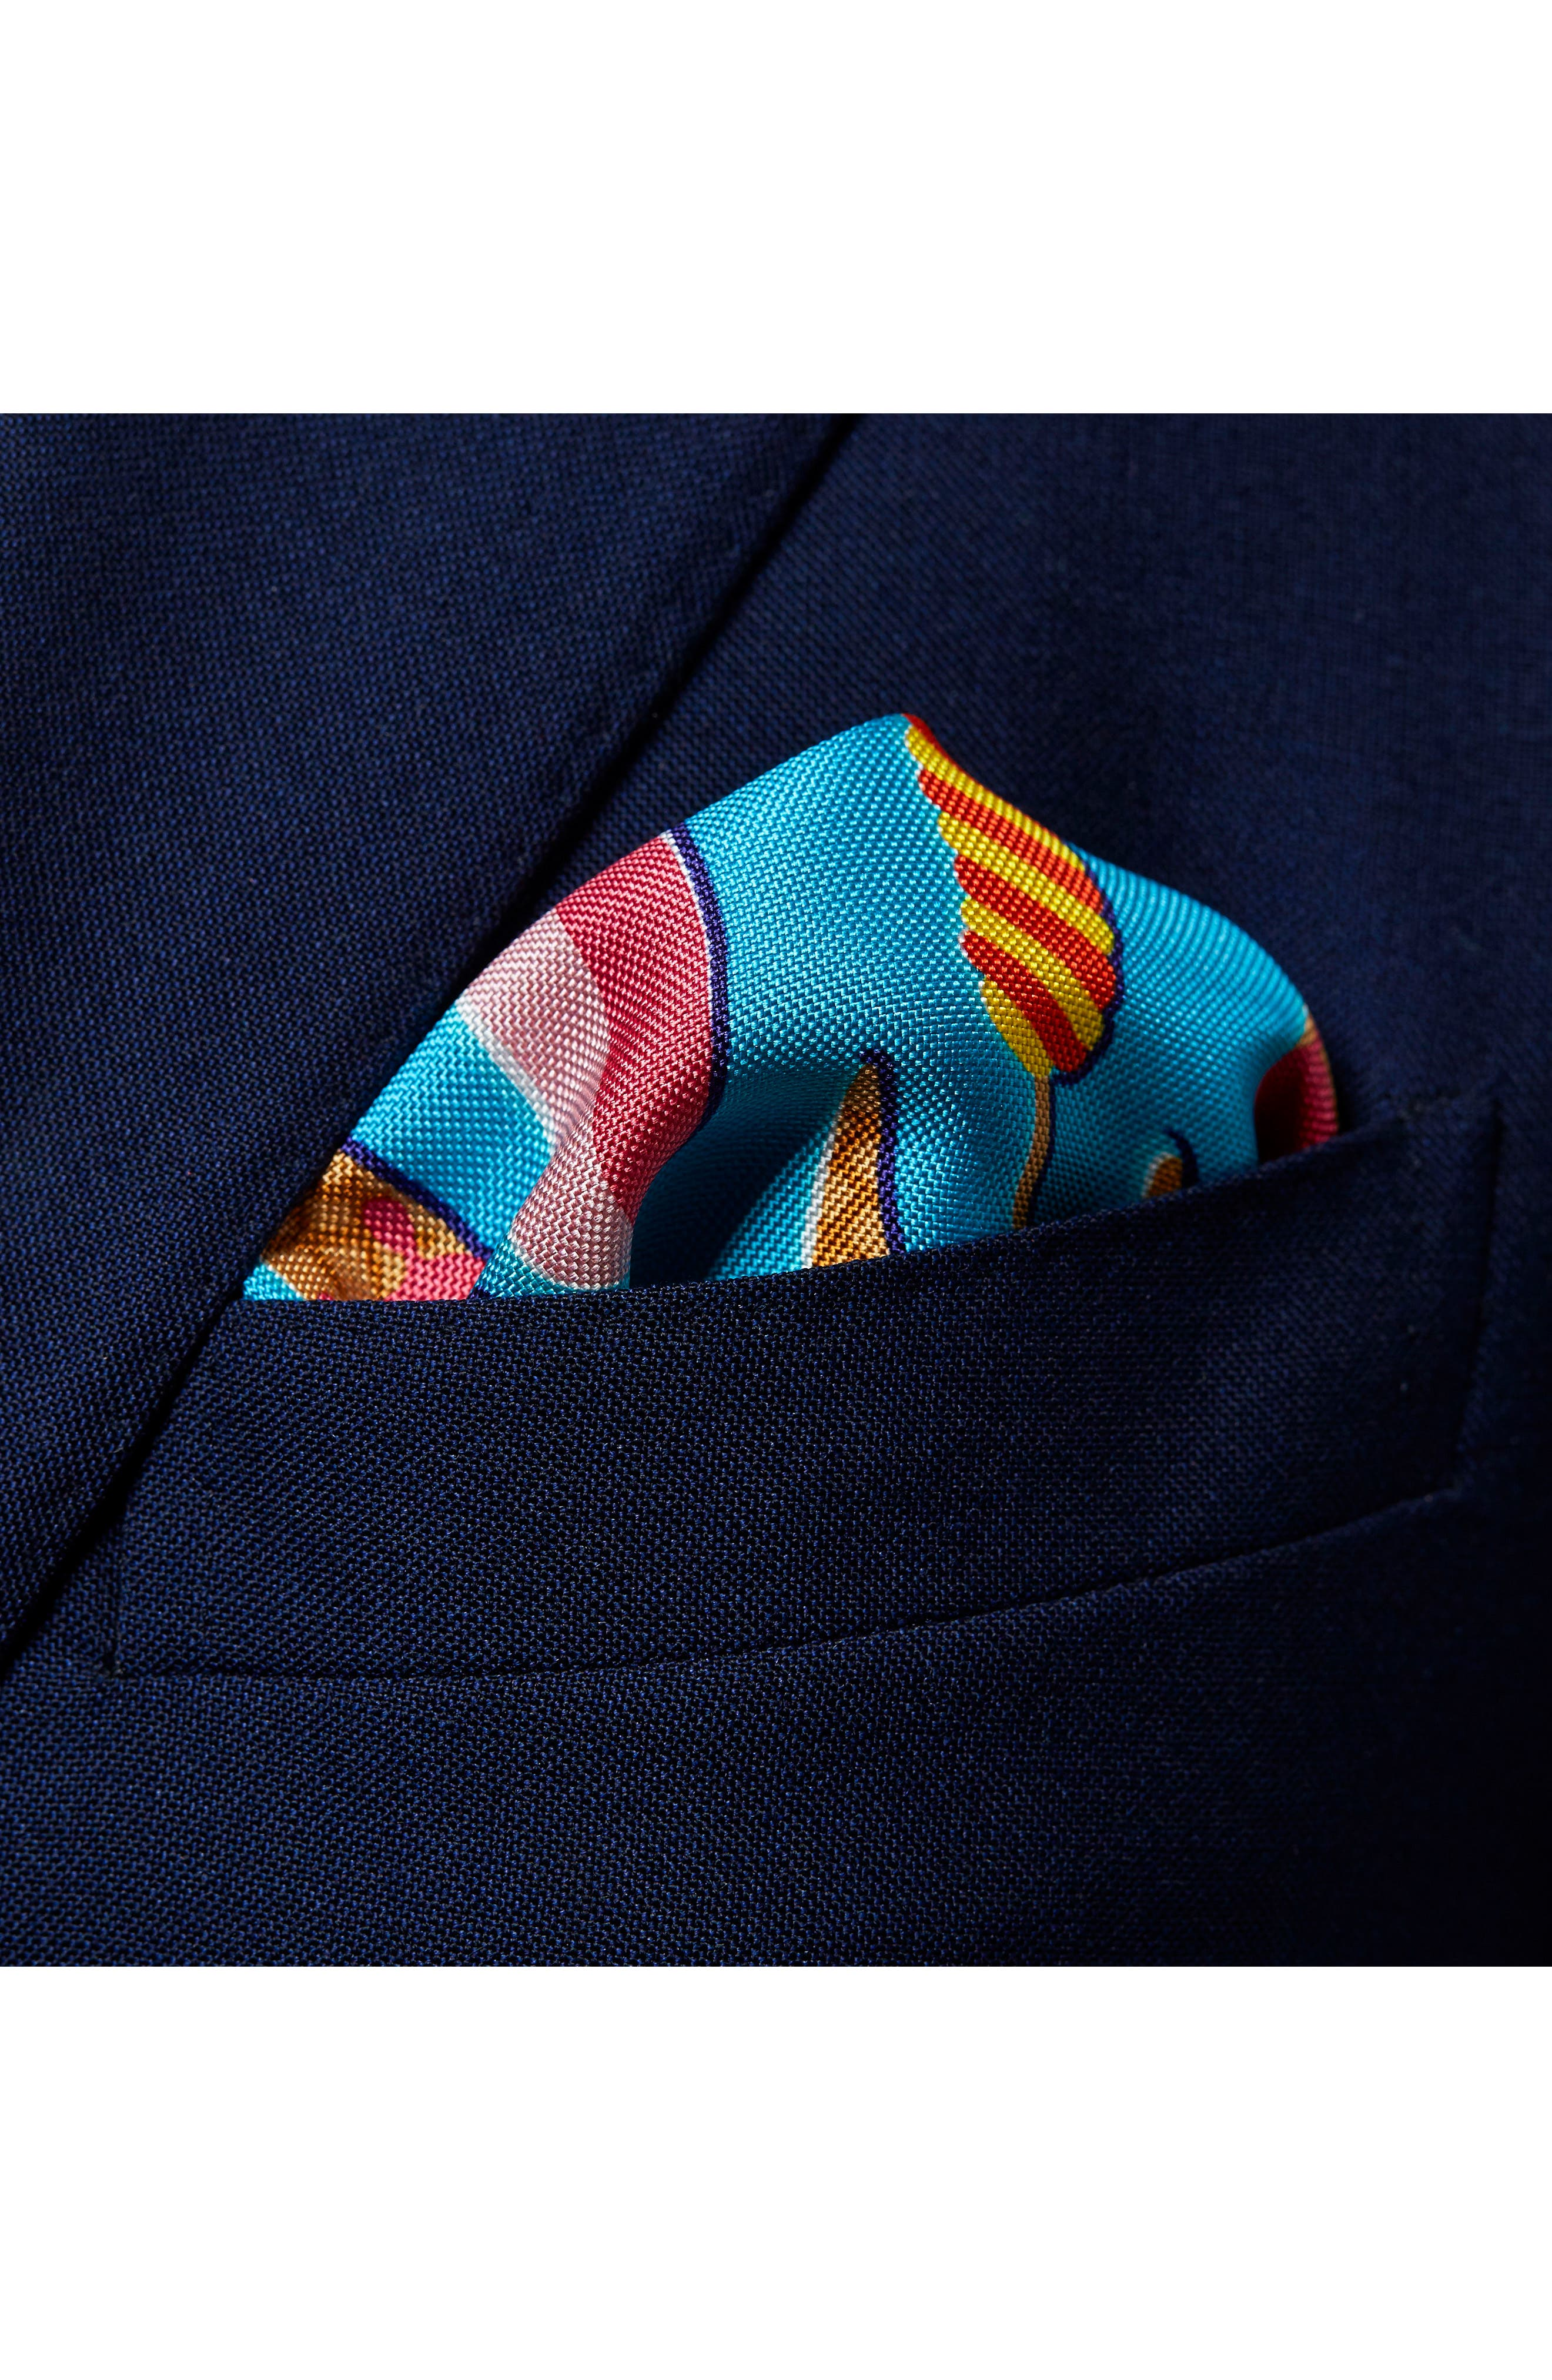 Ice Cream Silk Pocket Square,                             Alternate thumbnail 2, color,                             400